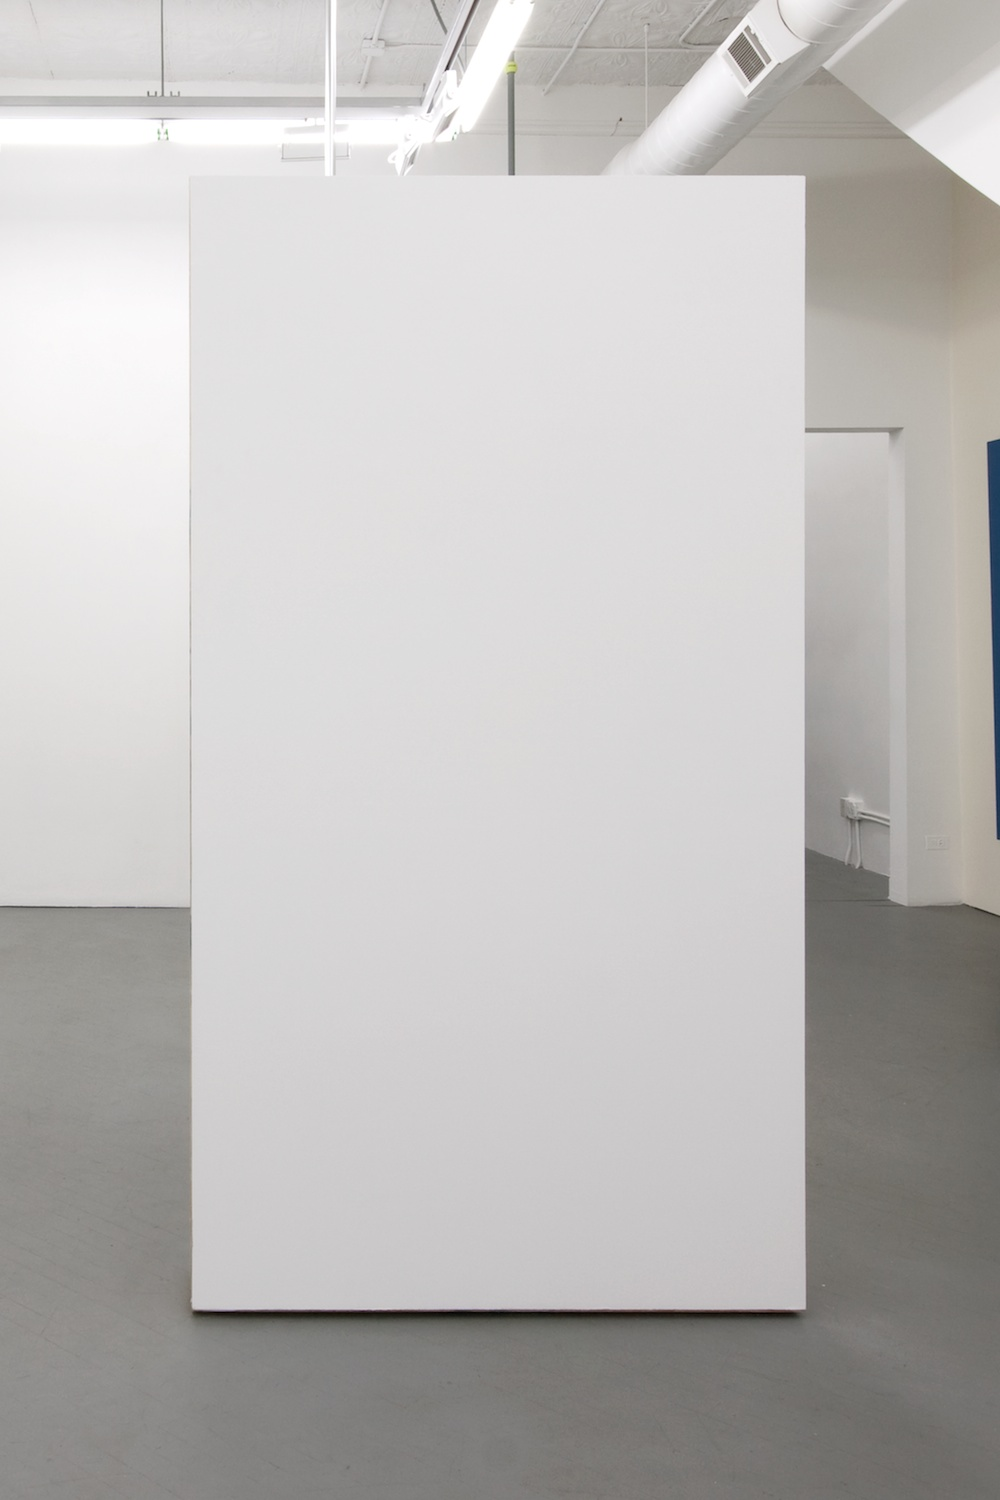 "Brendan Fowler  Summer 2012 Wall (90""x 48"" White Flat) / Summer 2012 Wall (90""x 48"" White Flat) / Summer 2012 Wall (90""x 48"" White Flat) / Summer 2012 Wall (90""x 48"" White Flat)  2012 Lumber, drywall, latex paint 90h x 48w x 4 ¼d in (Four sections) BF001"